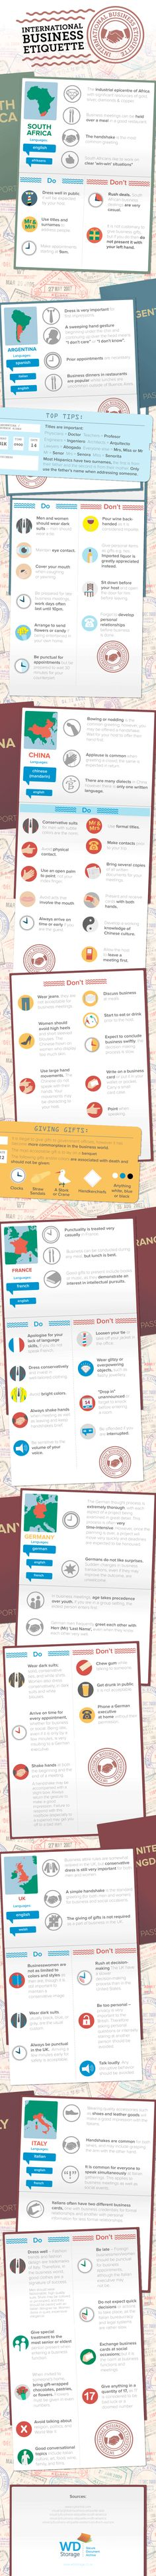 International Business Etiquette #infographic #Business #Travel #Meetings